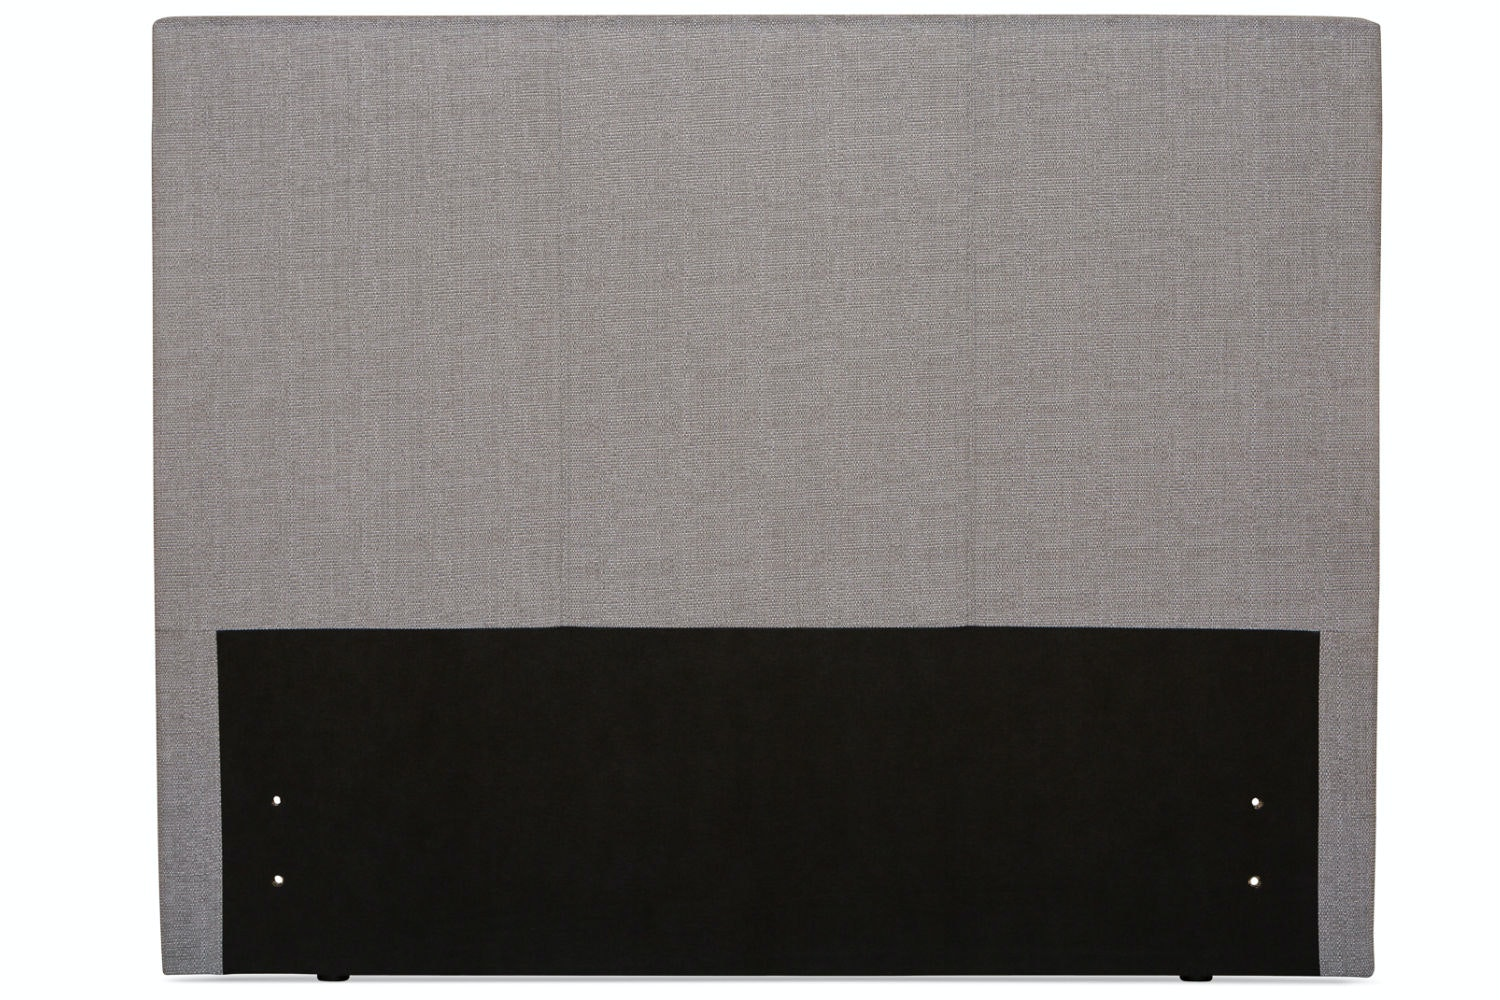 Duval 4'6 Headboard | Grey | Vertical Stitch